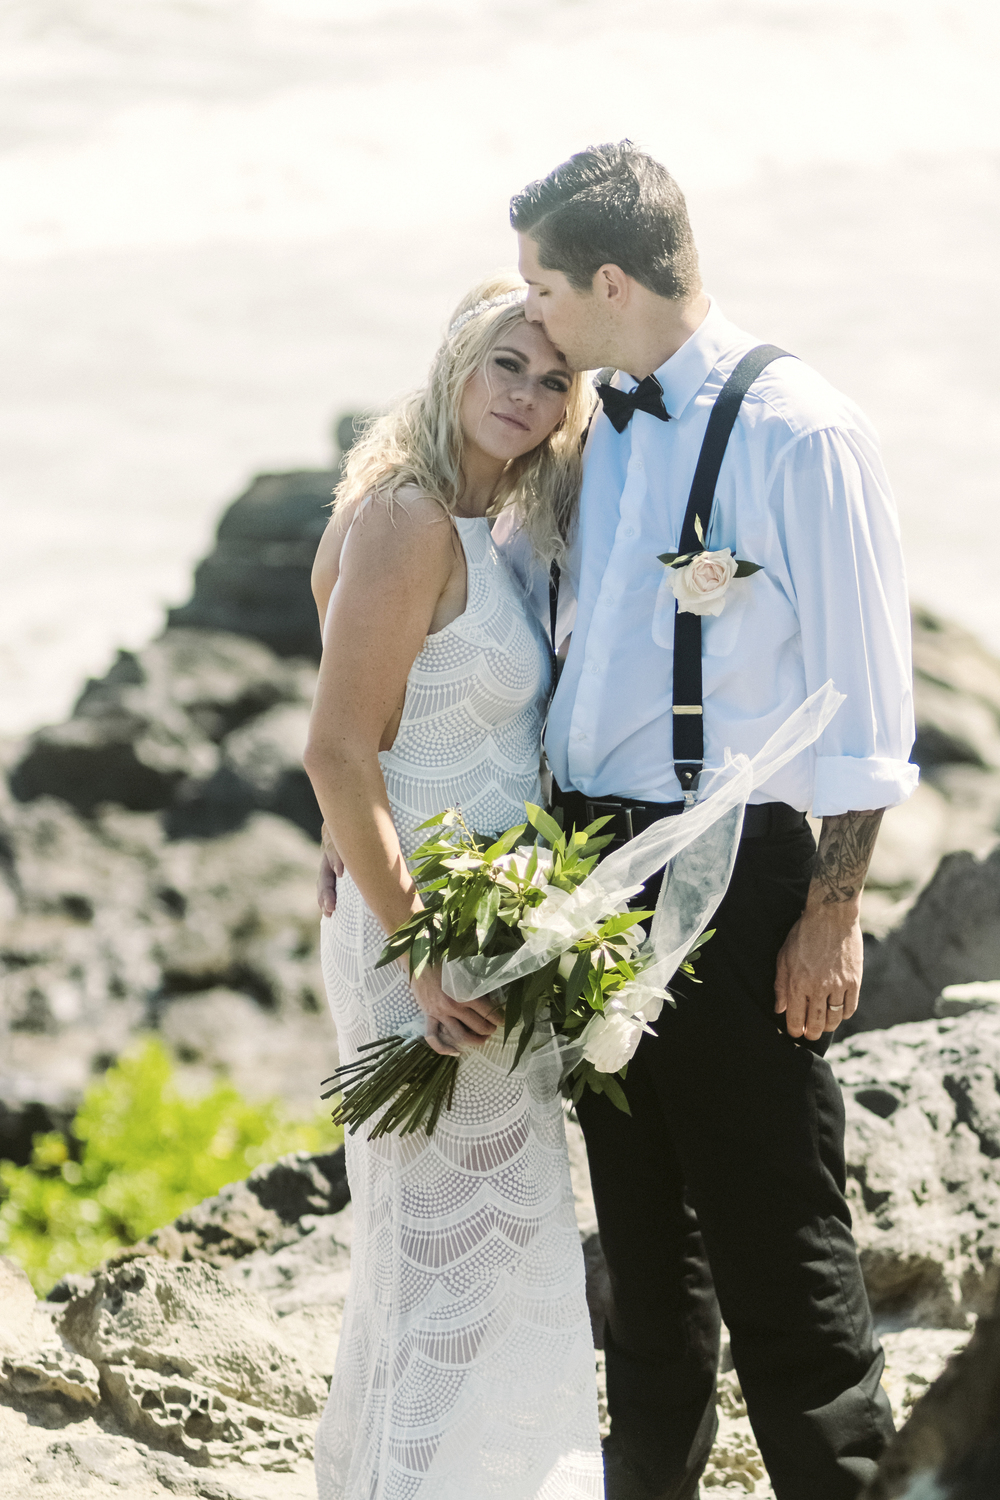 angie-diaz-photography-hawaii-wedding-53.jpg